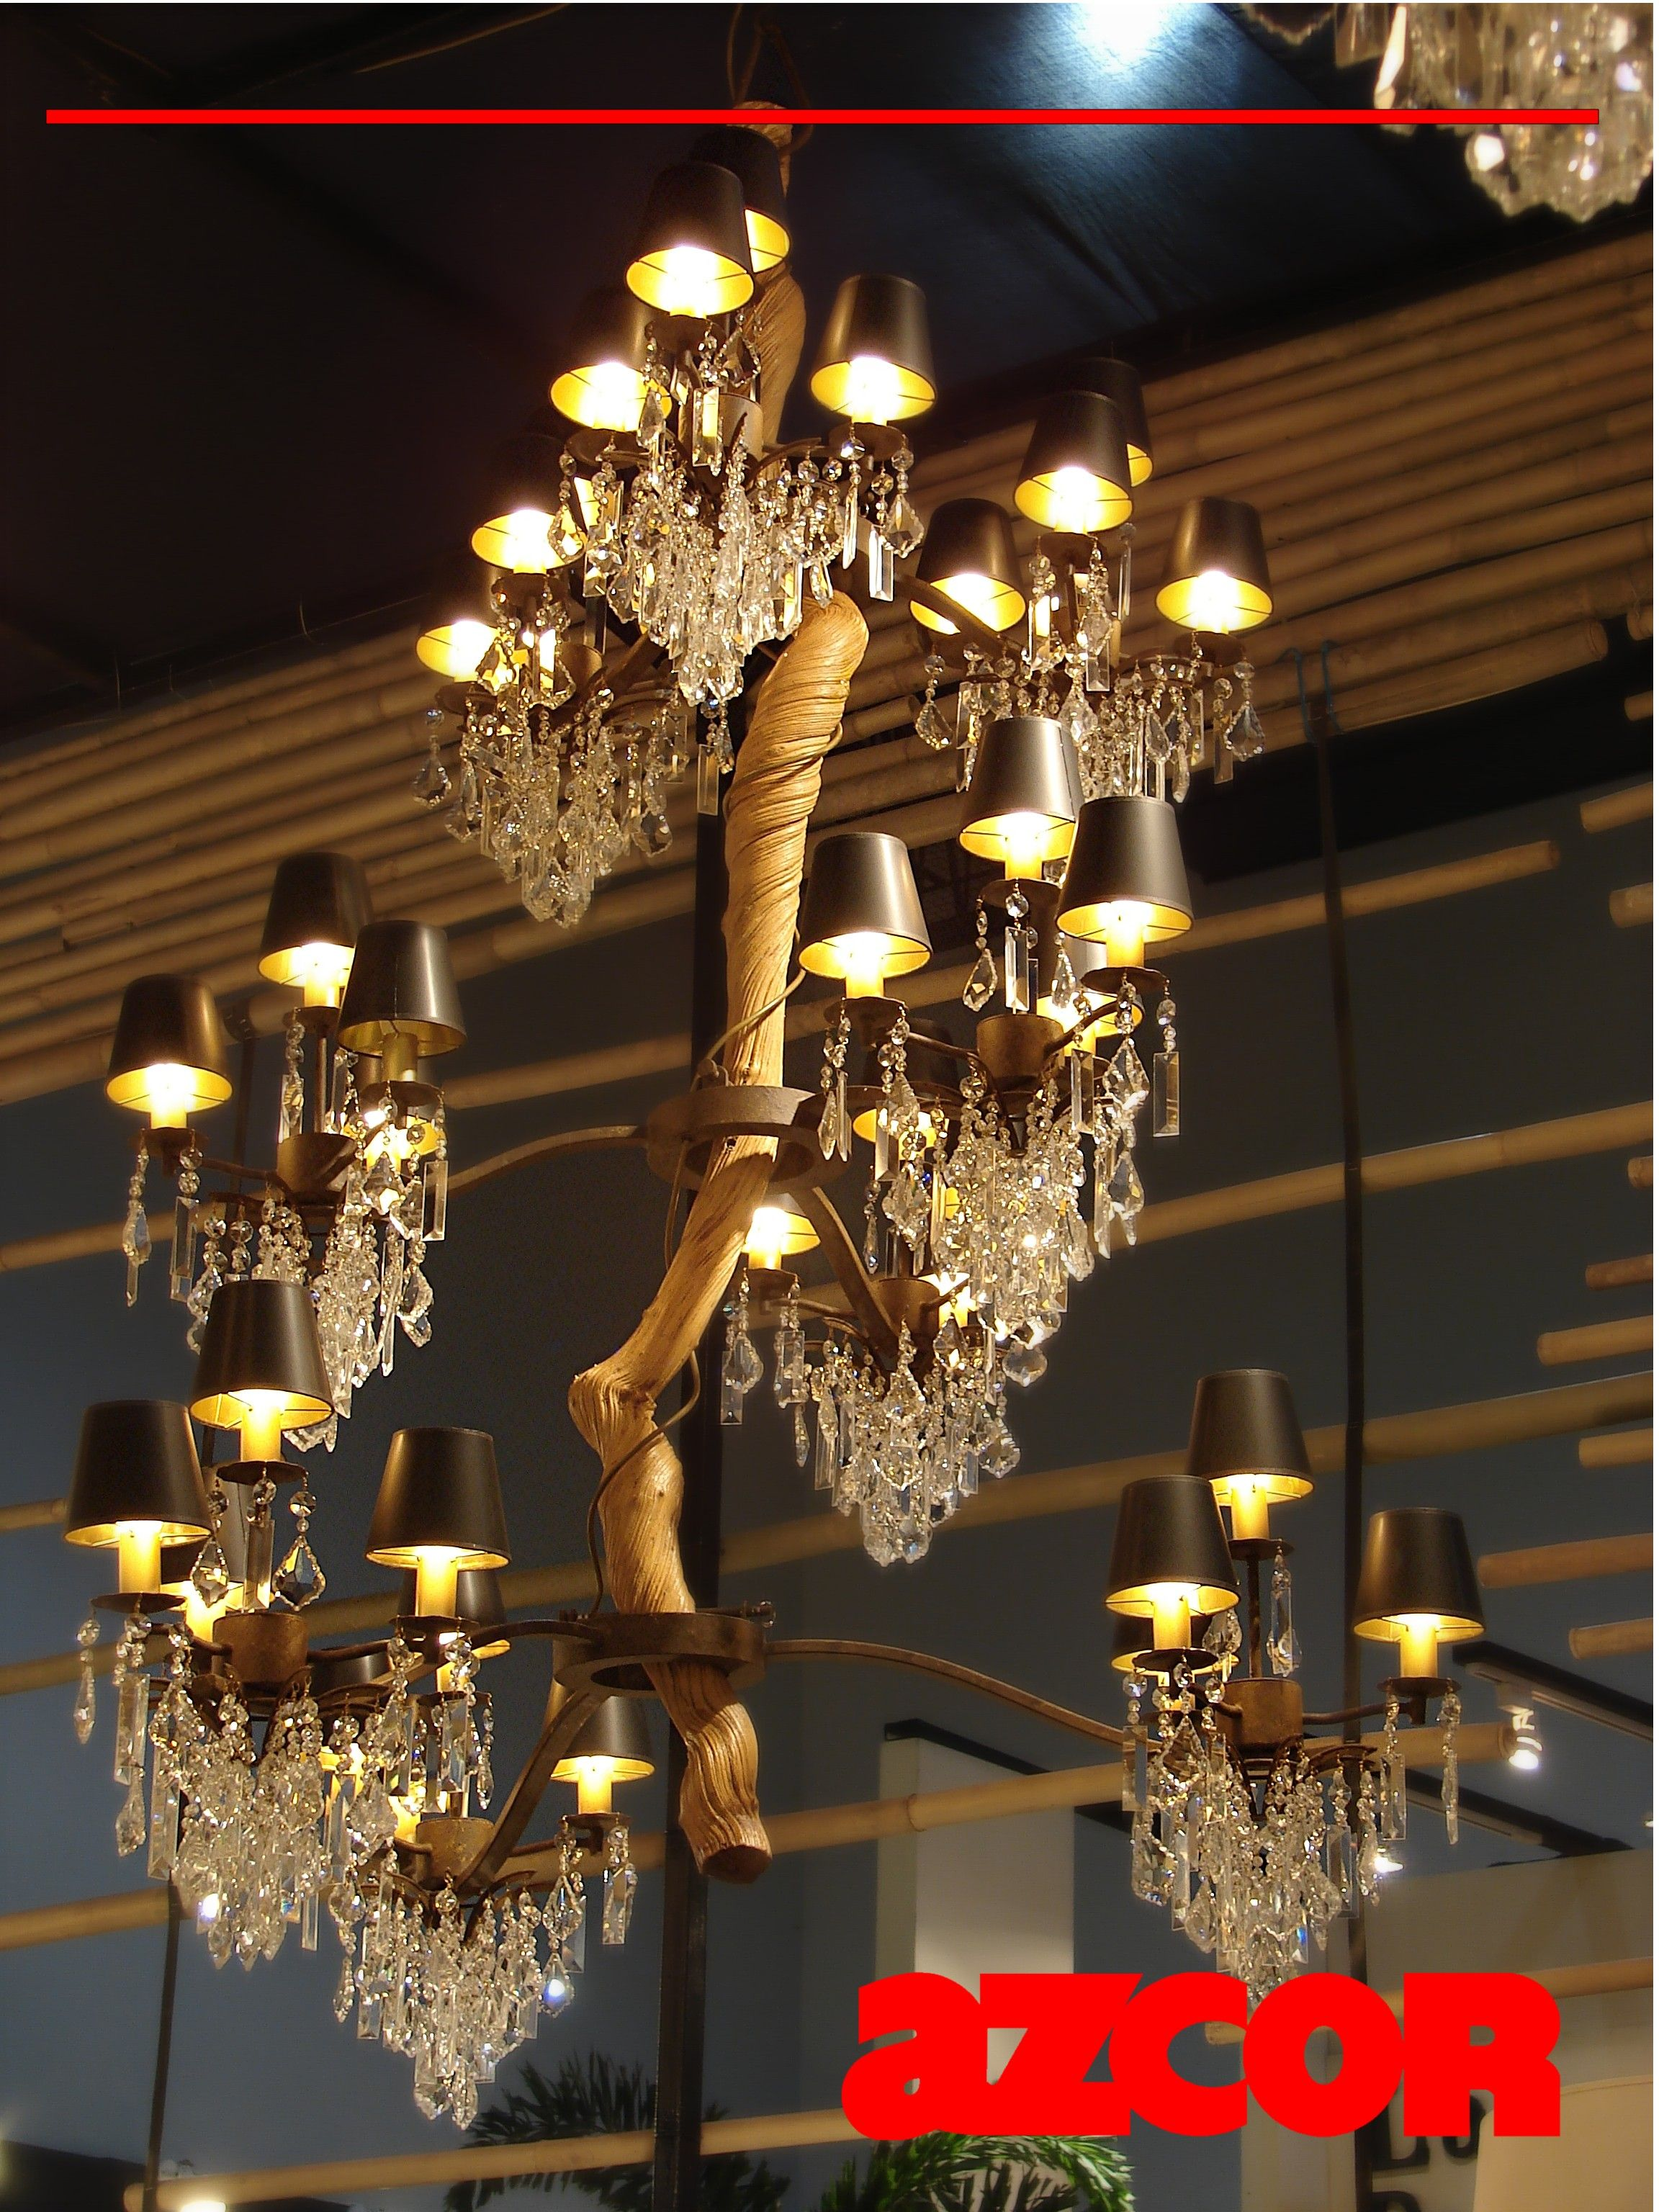 Twisted vine chandelier 36 ceiling lighting pinterest twisted vine chandelier 36 aloadofball Image collections